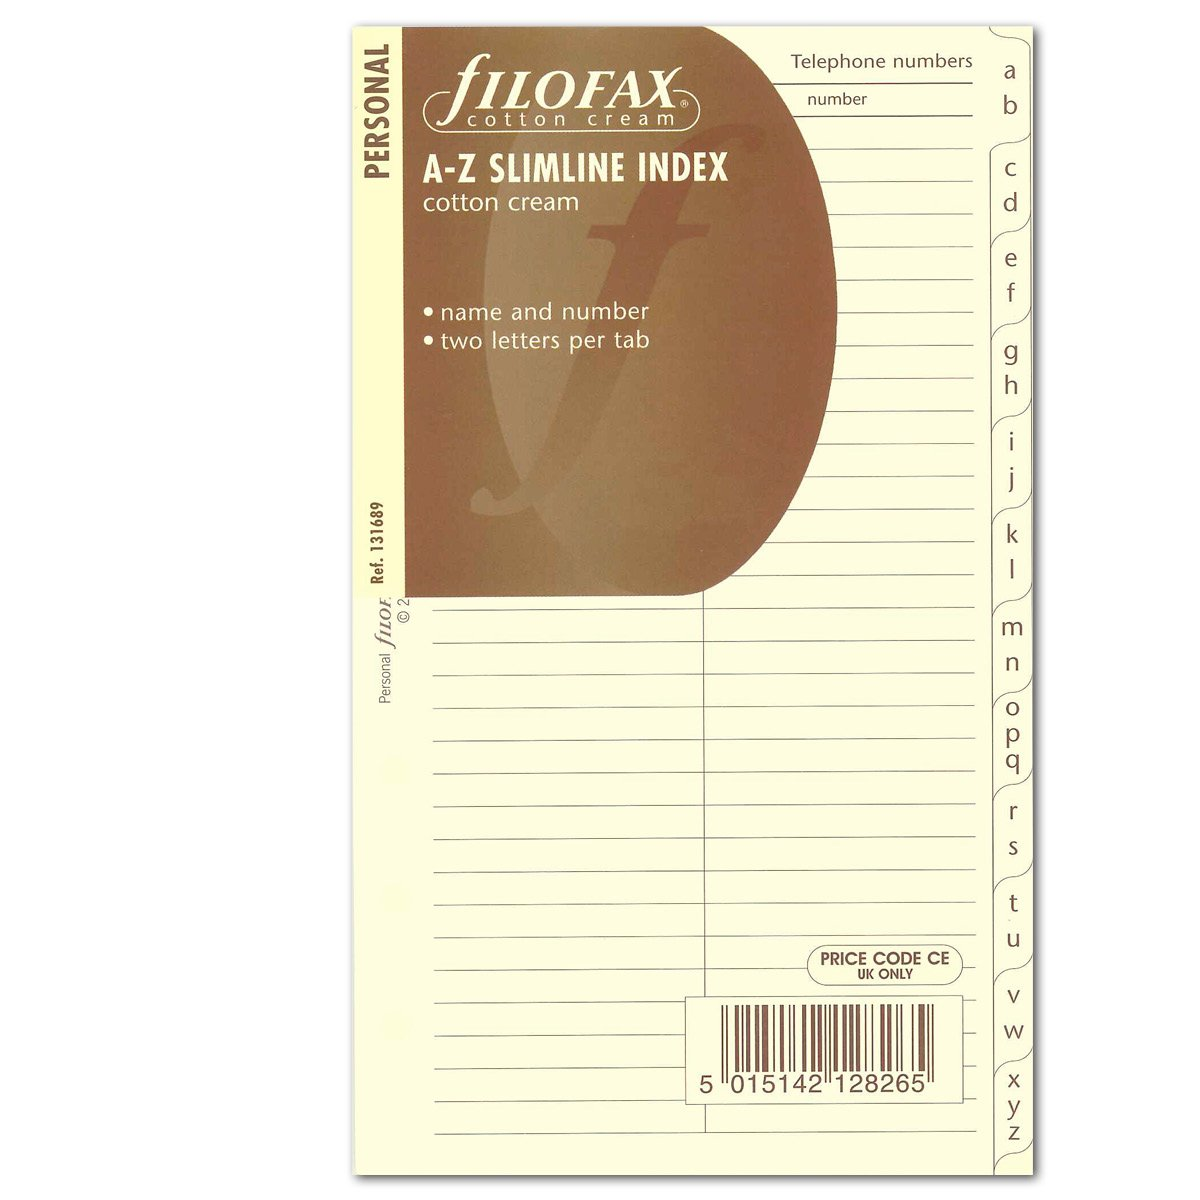 Filofax Personal Cotton Cream A-Z Slimline Index Name/ Telephone Numbers 131689